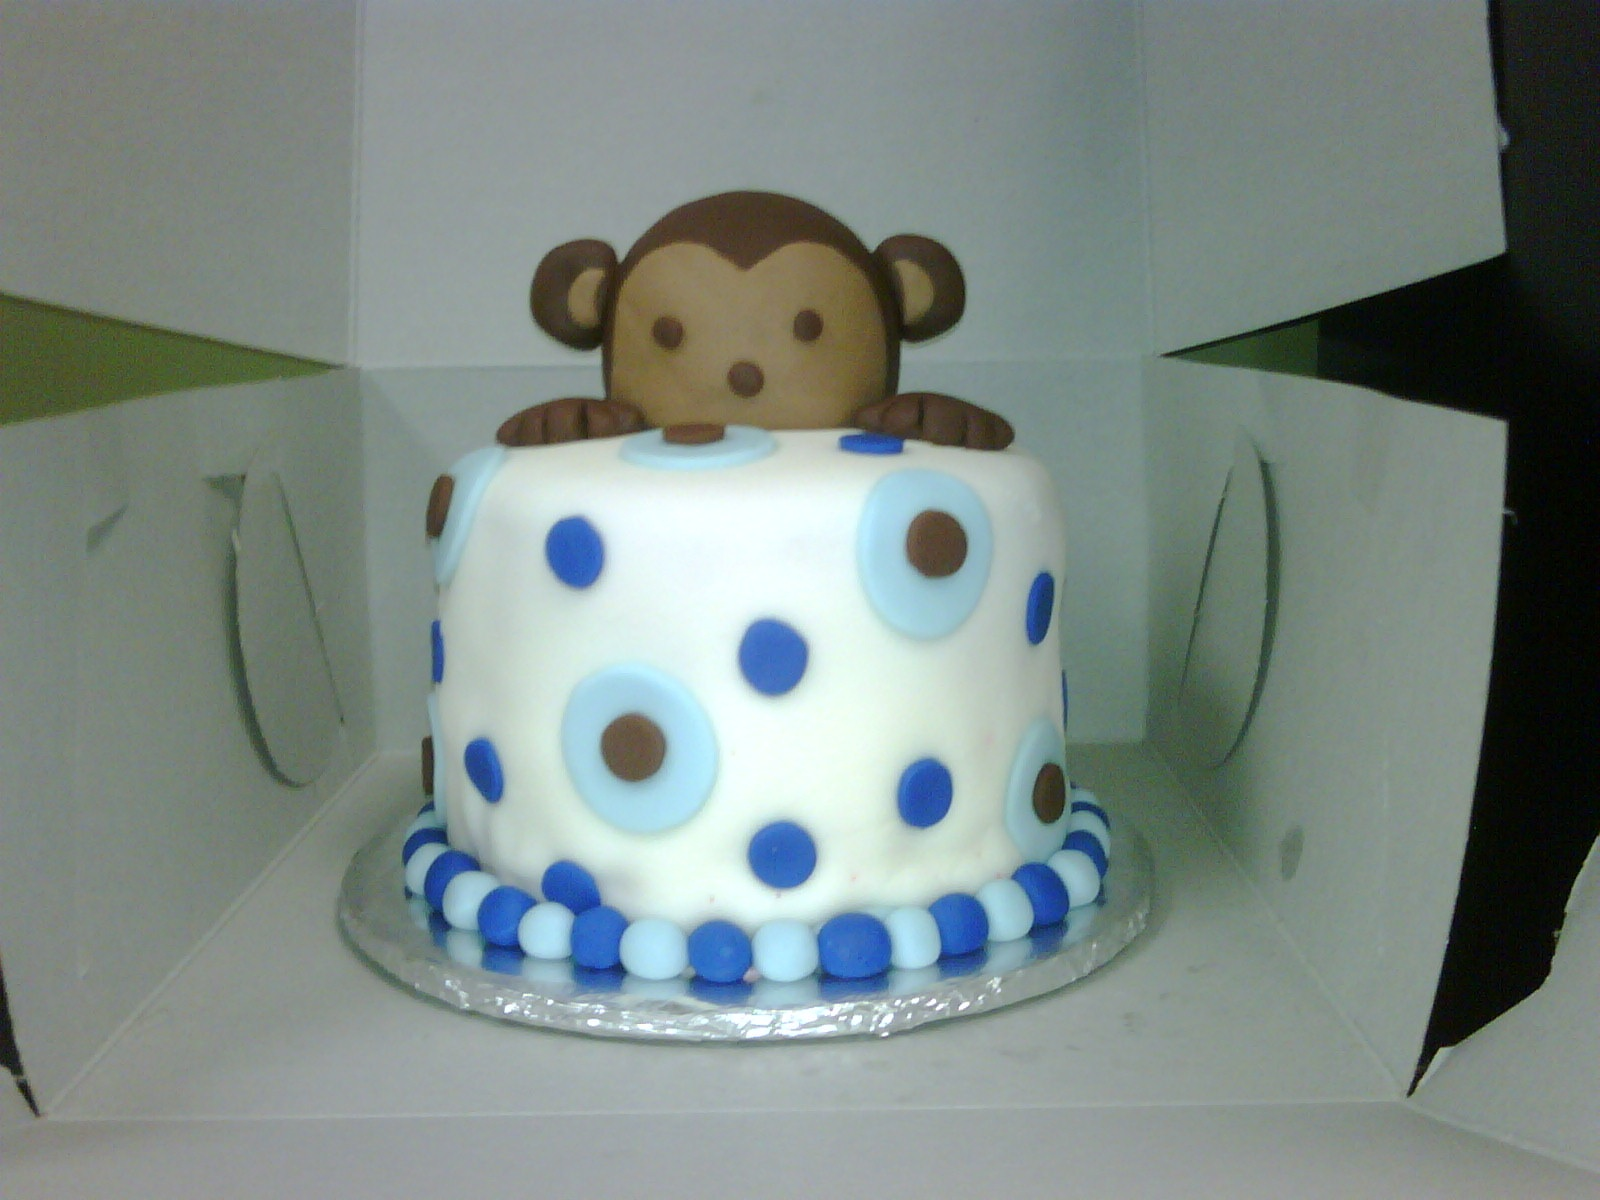 cake pops truffles llc mod monkey cake topper for baby shower